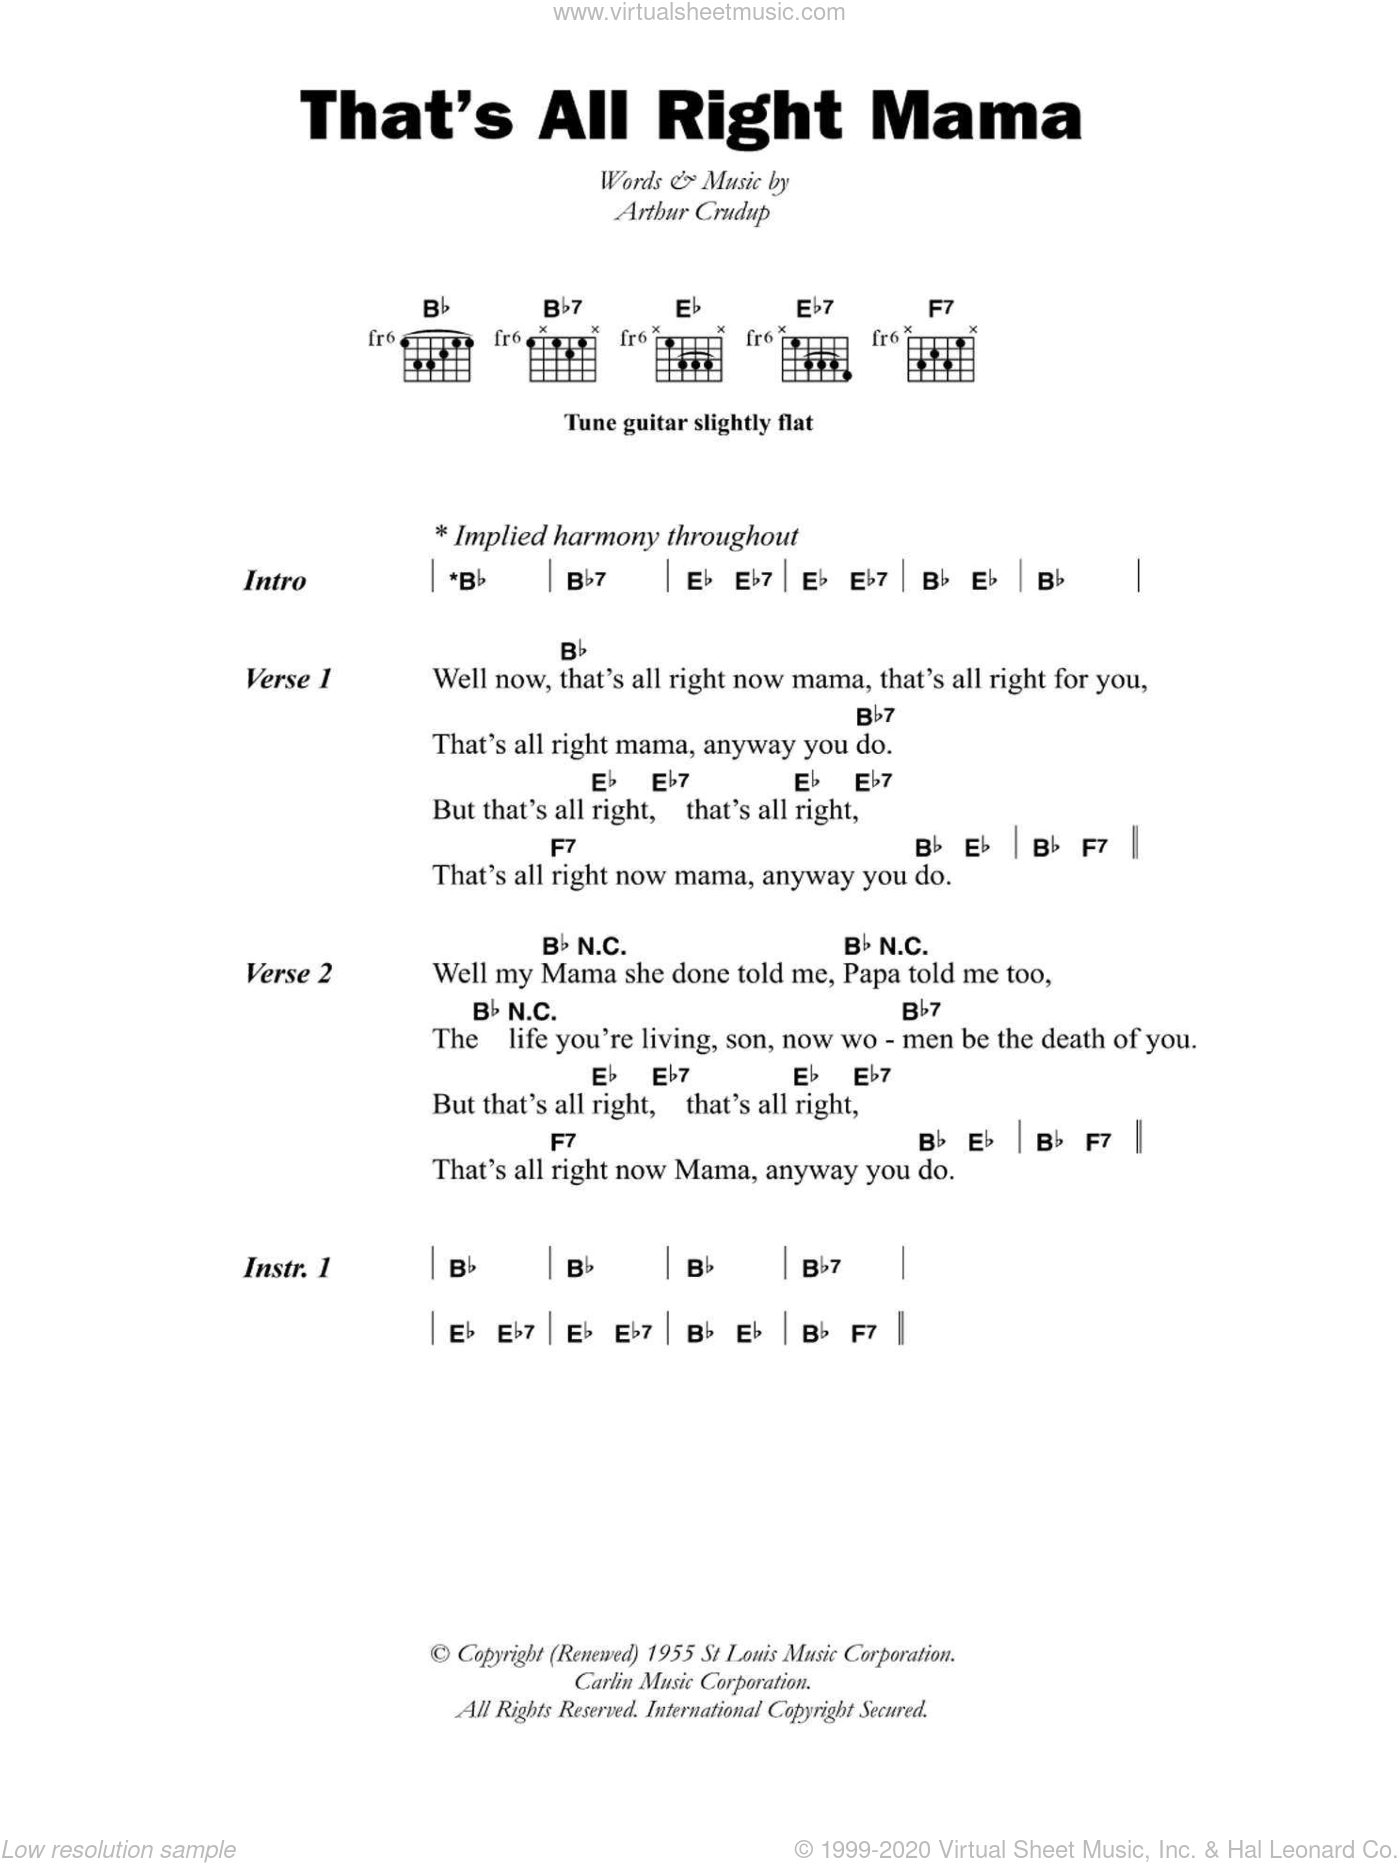 That's All Right Mama sheet music for guitar (chords) by Arthur Crudup, intermediate skill level